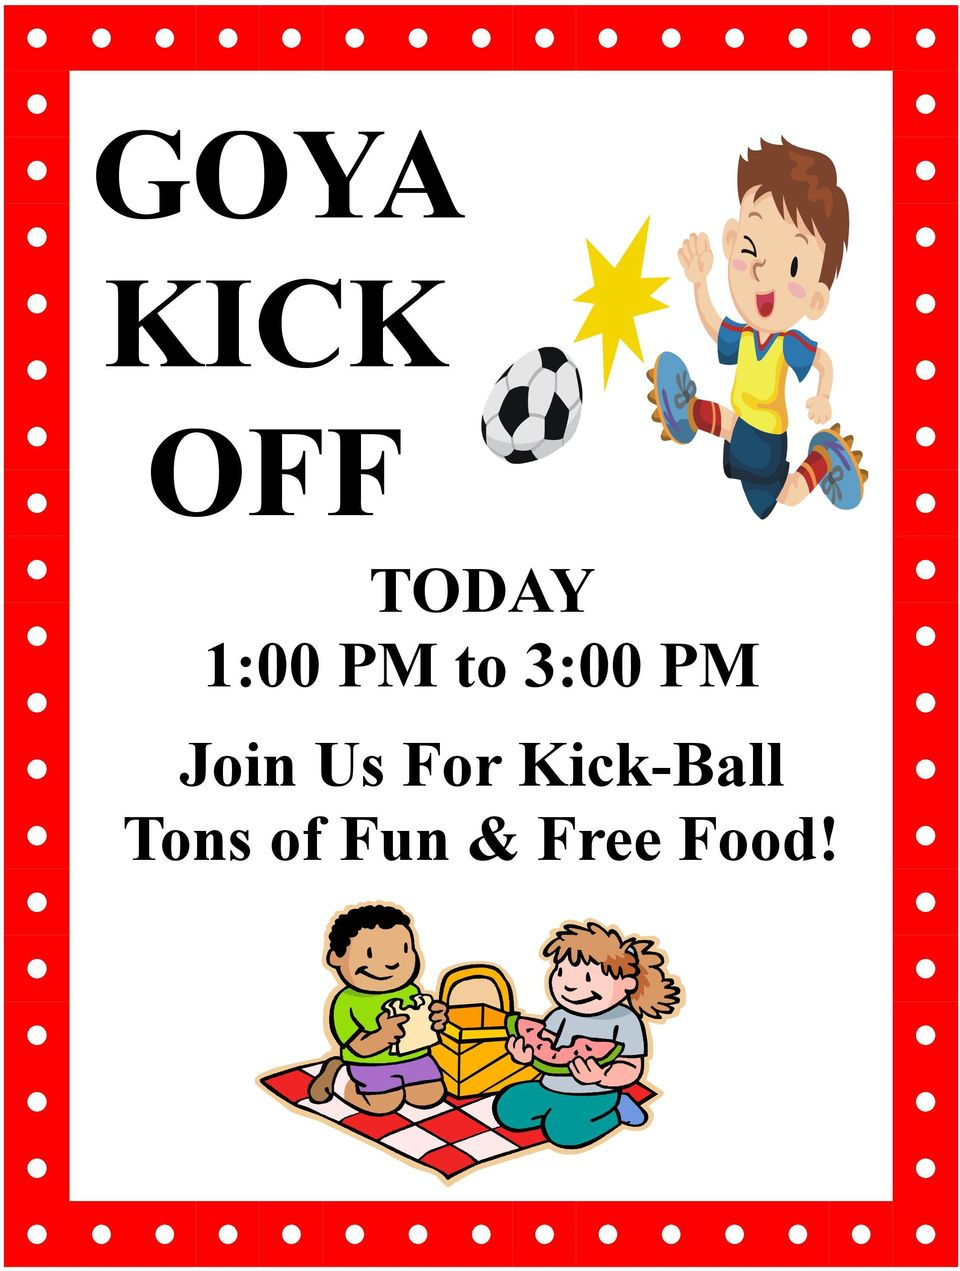 Join Us For Kick-Ball